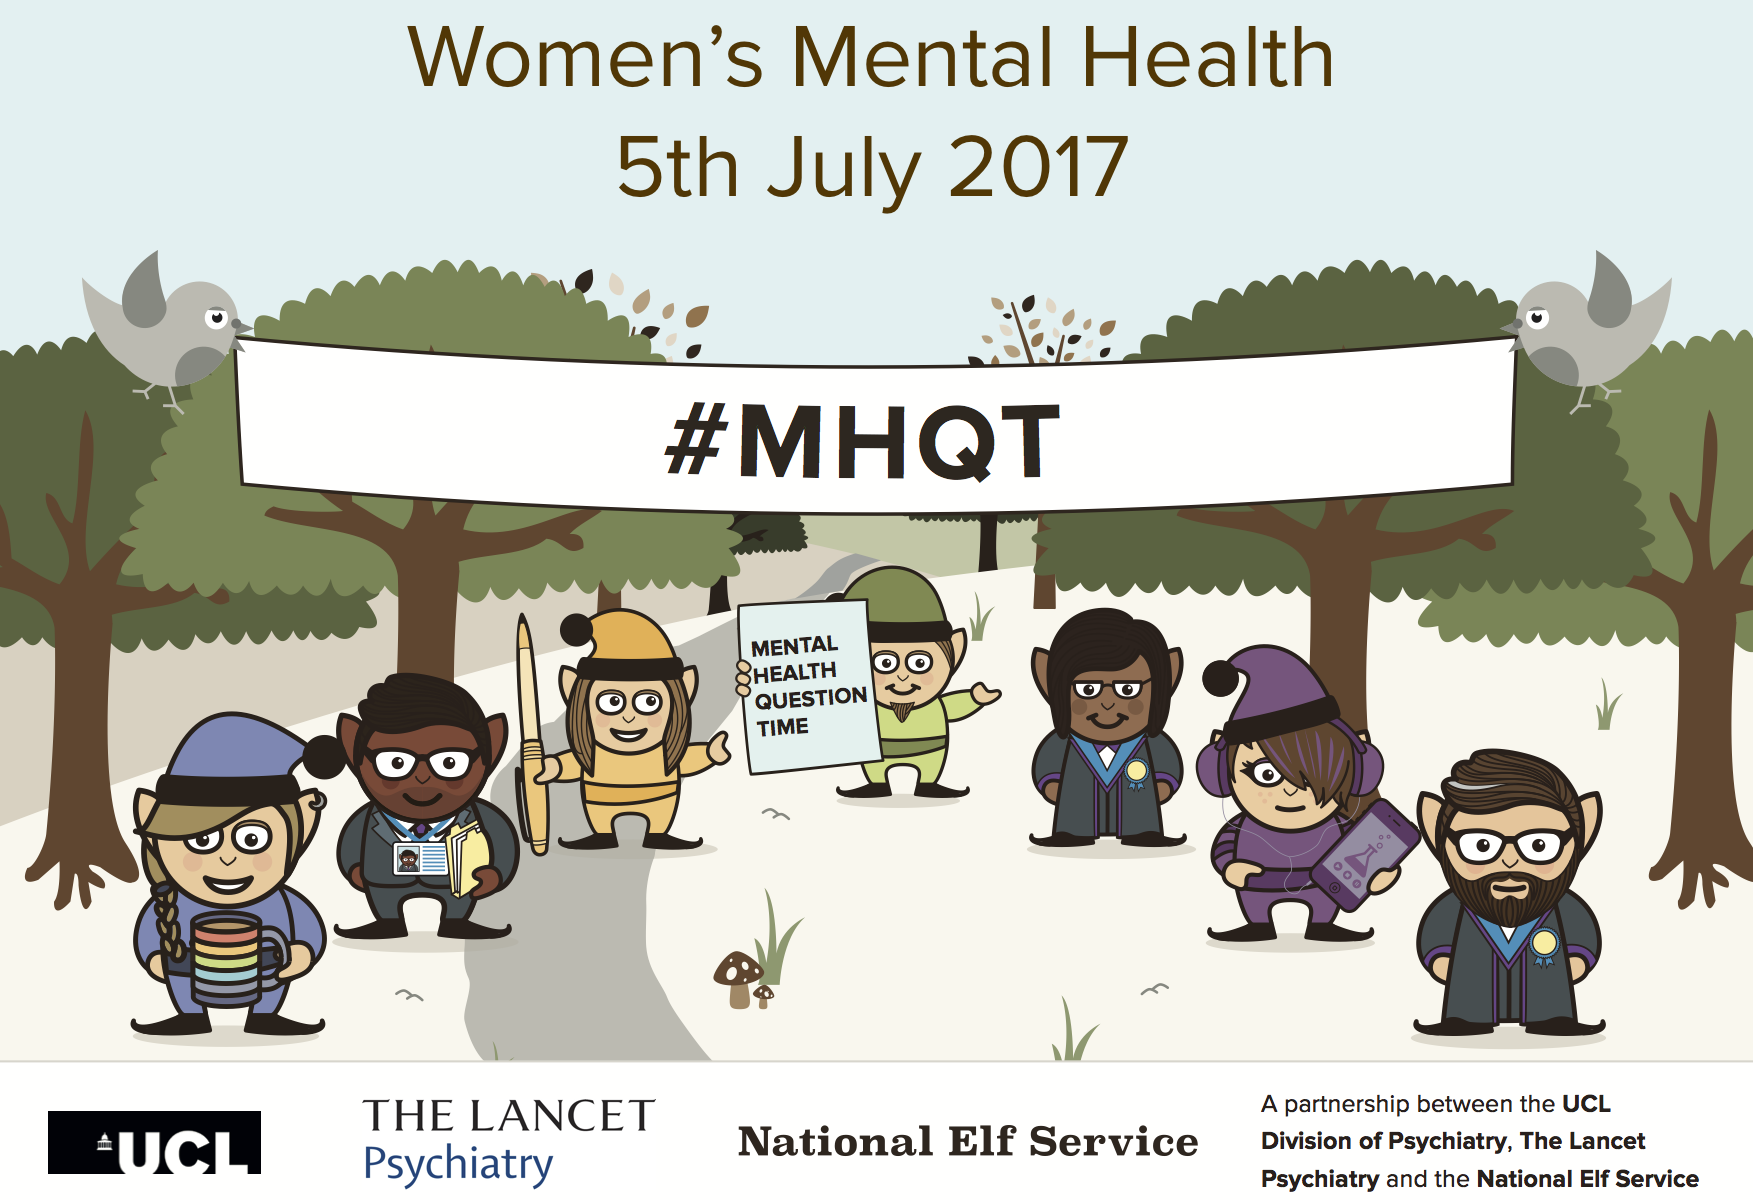 #MHQT Women's Mental Health public discussion, London, Jul 2017